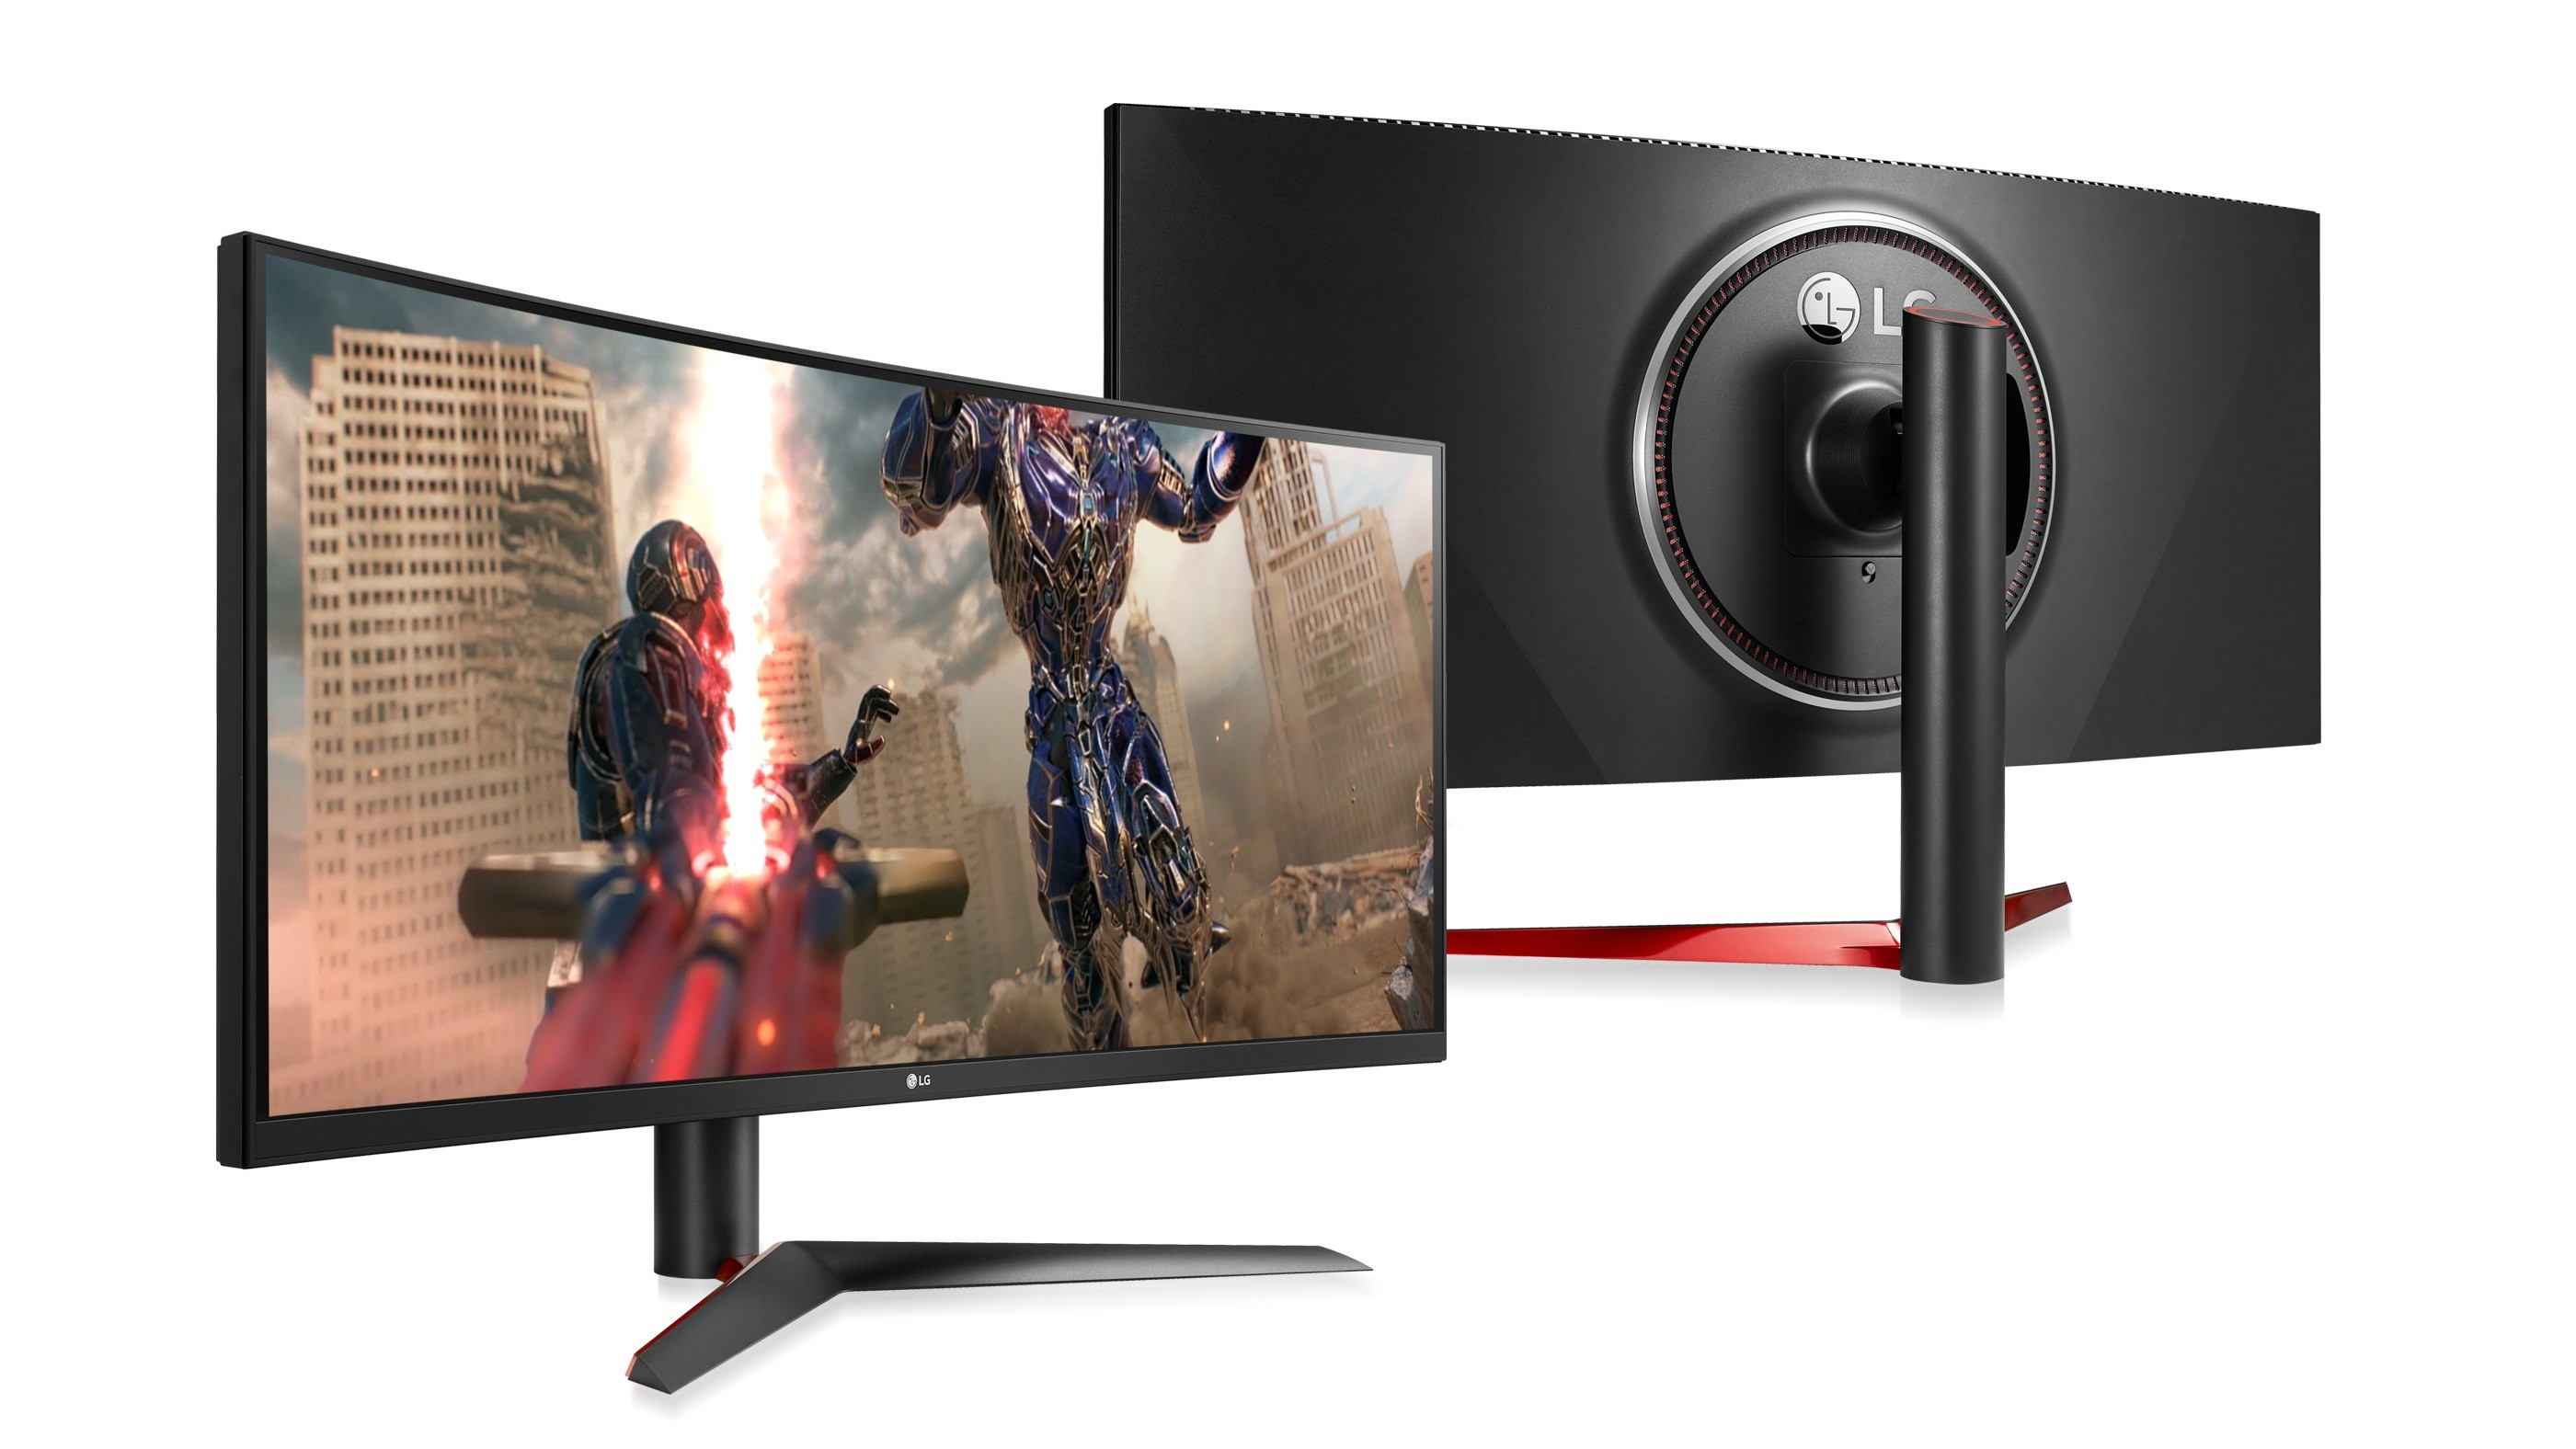 LG unveils two new ultra-wide monitors to be shown off at CES - Neowin